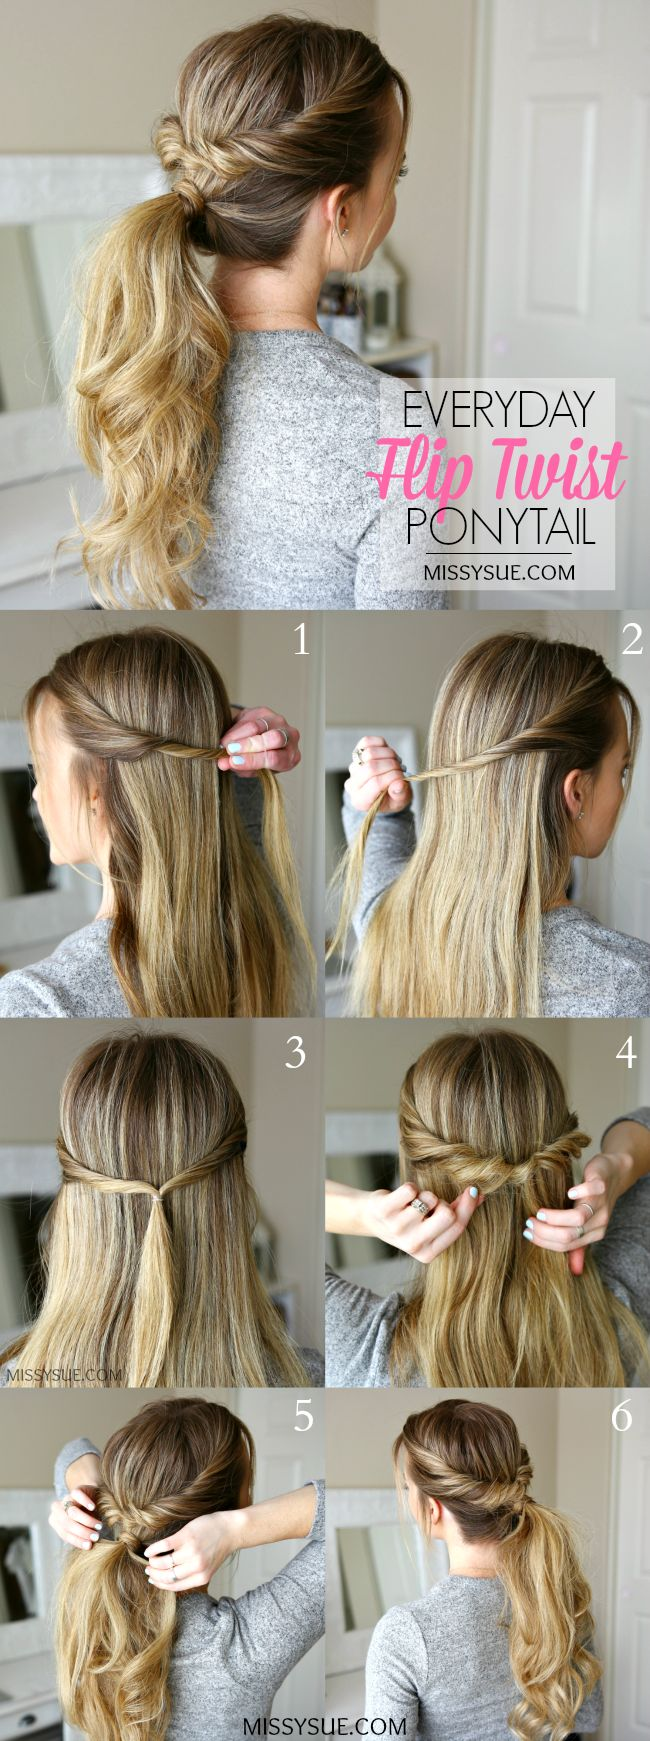 best images about hair on pinterest mohawks updo and curls